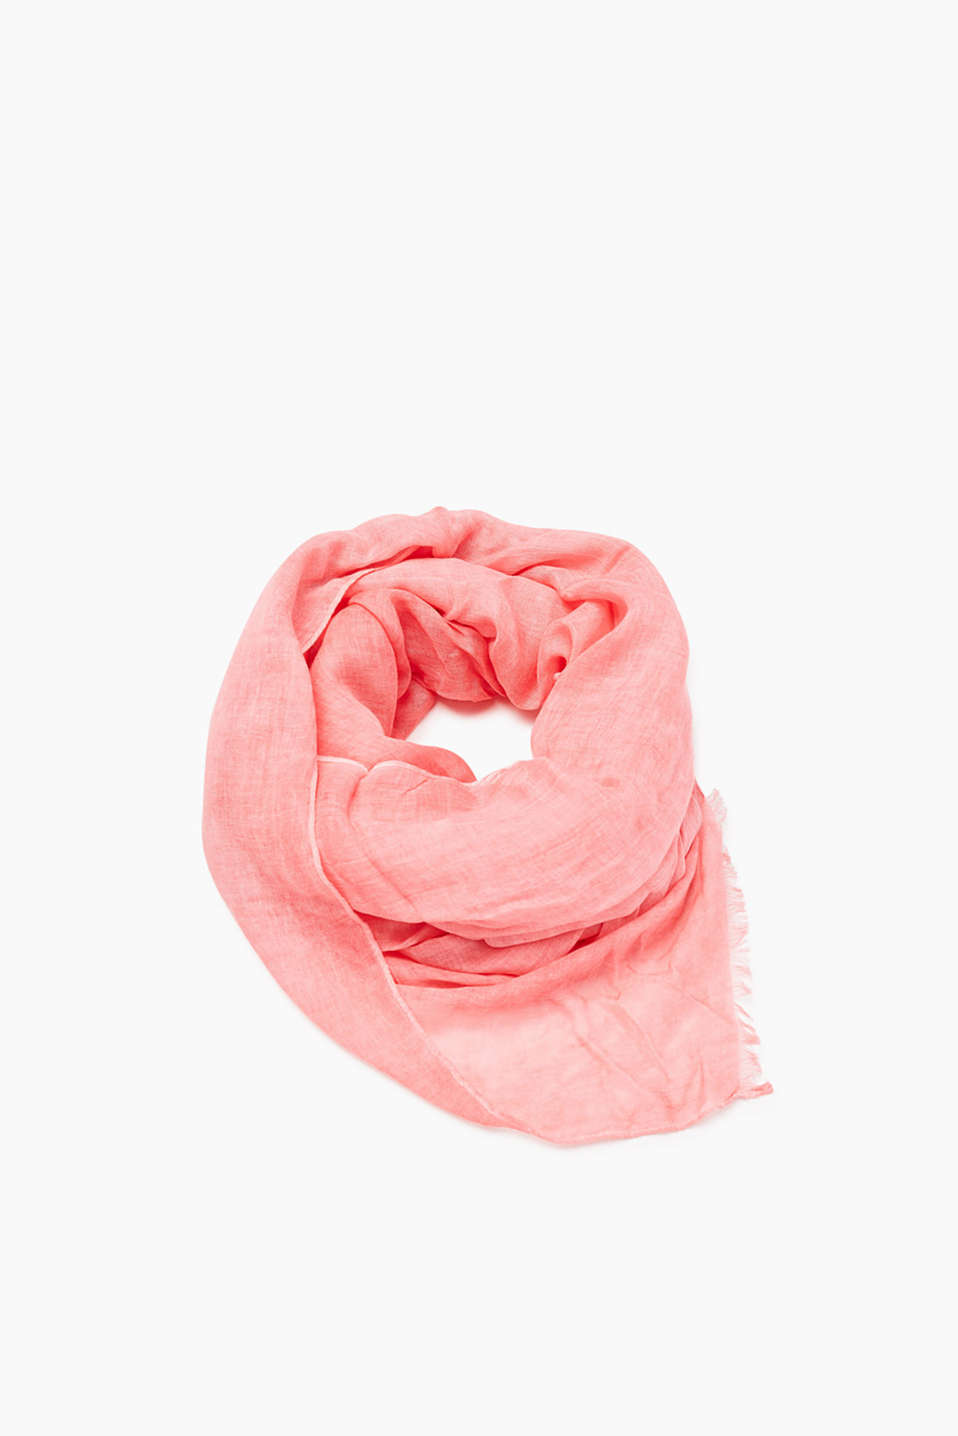 In lightweight viscose fabric: scarf in an oversized format